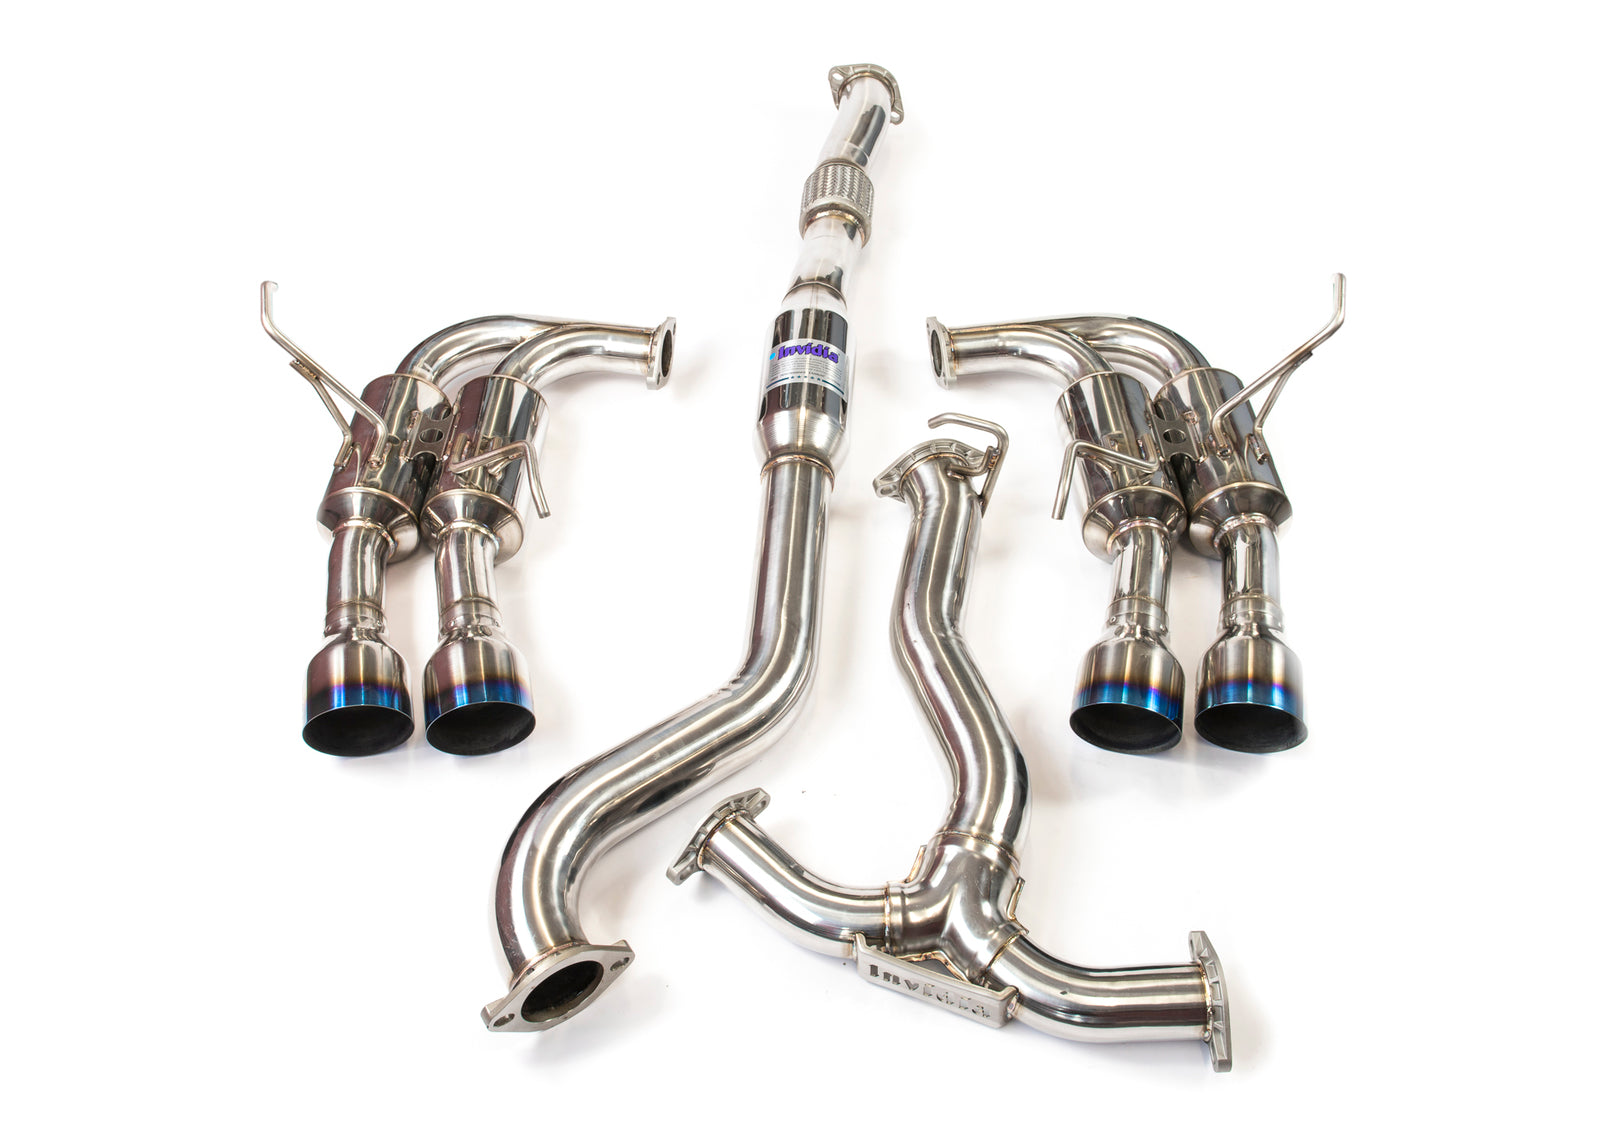 Invidia R400 Turbo back Exhaust - Ti Tips (WRX 11-14 Hatch)